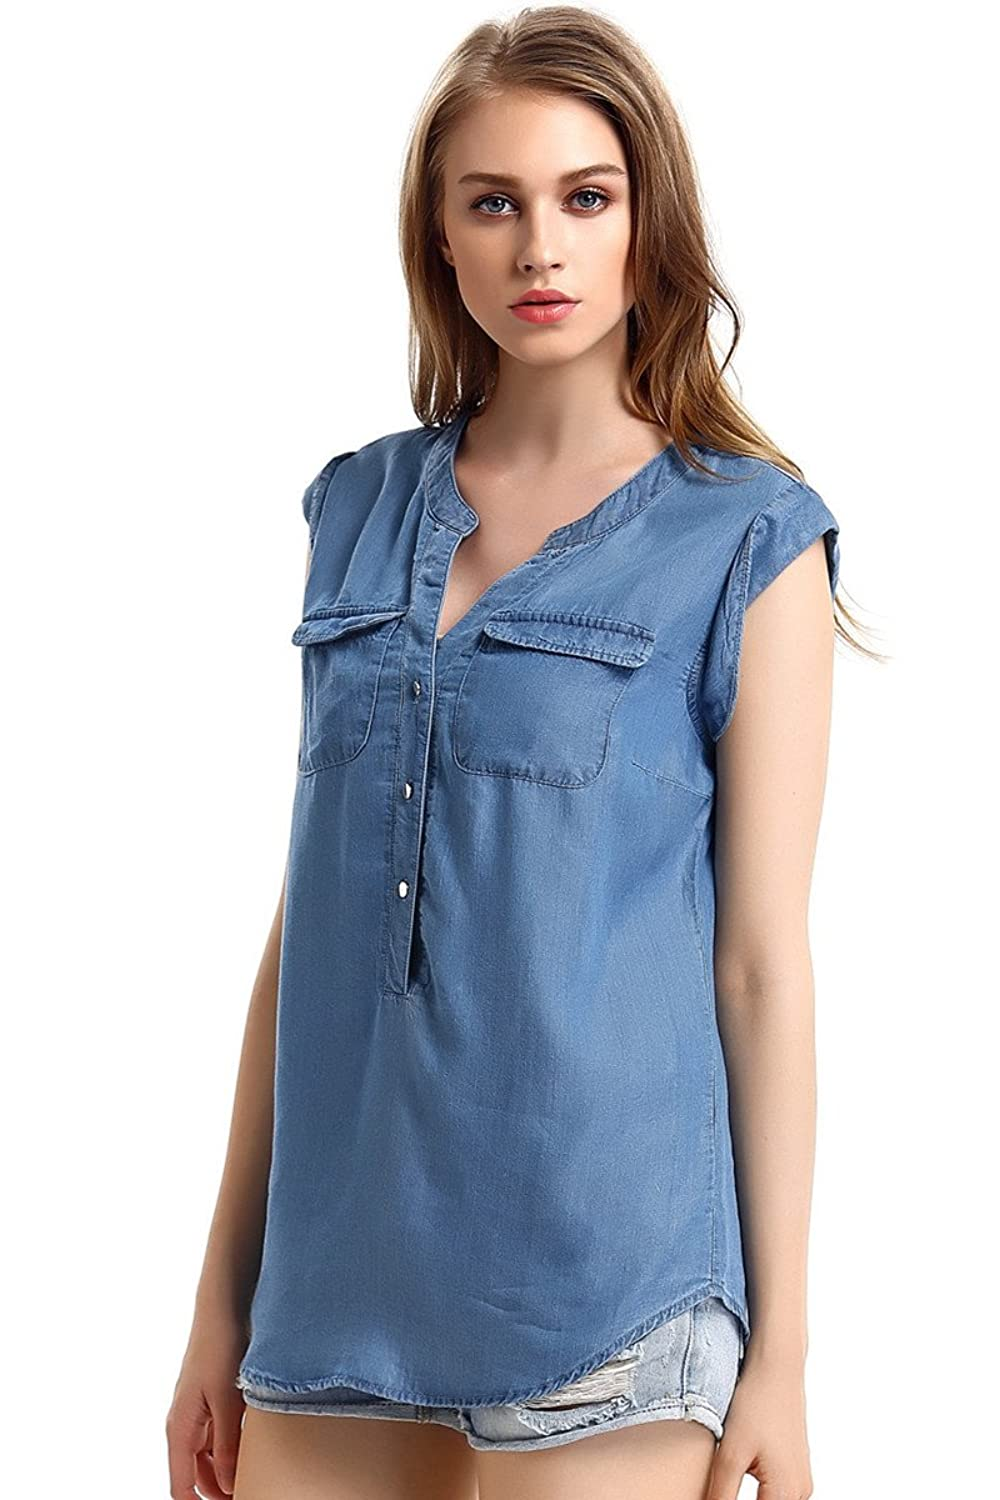 Escalier Women`s Sleeveless V-neck Tencel Denim Blouse Tank Tops